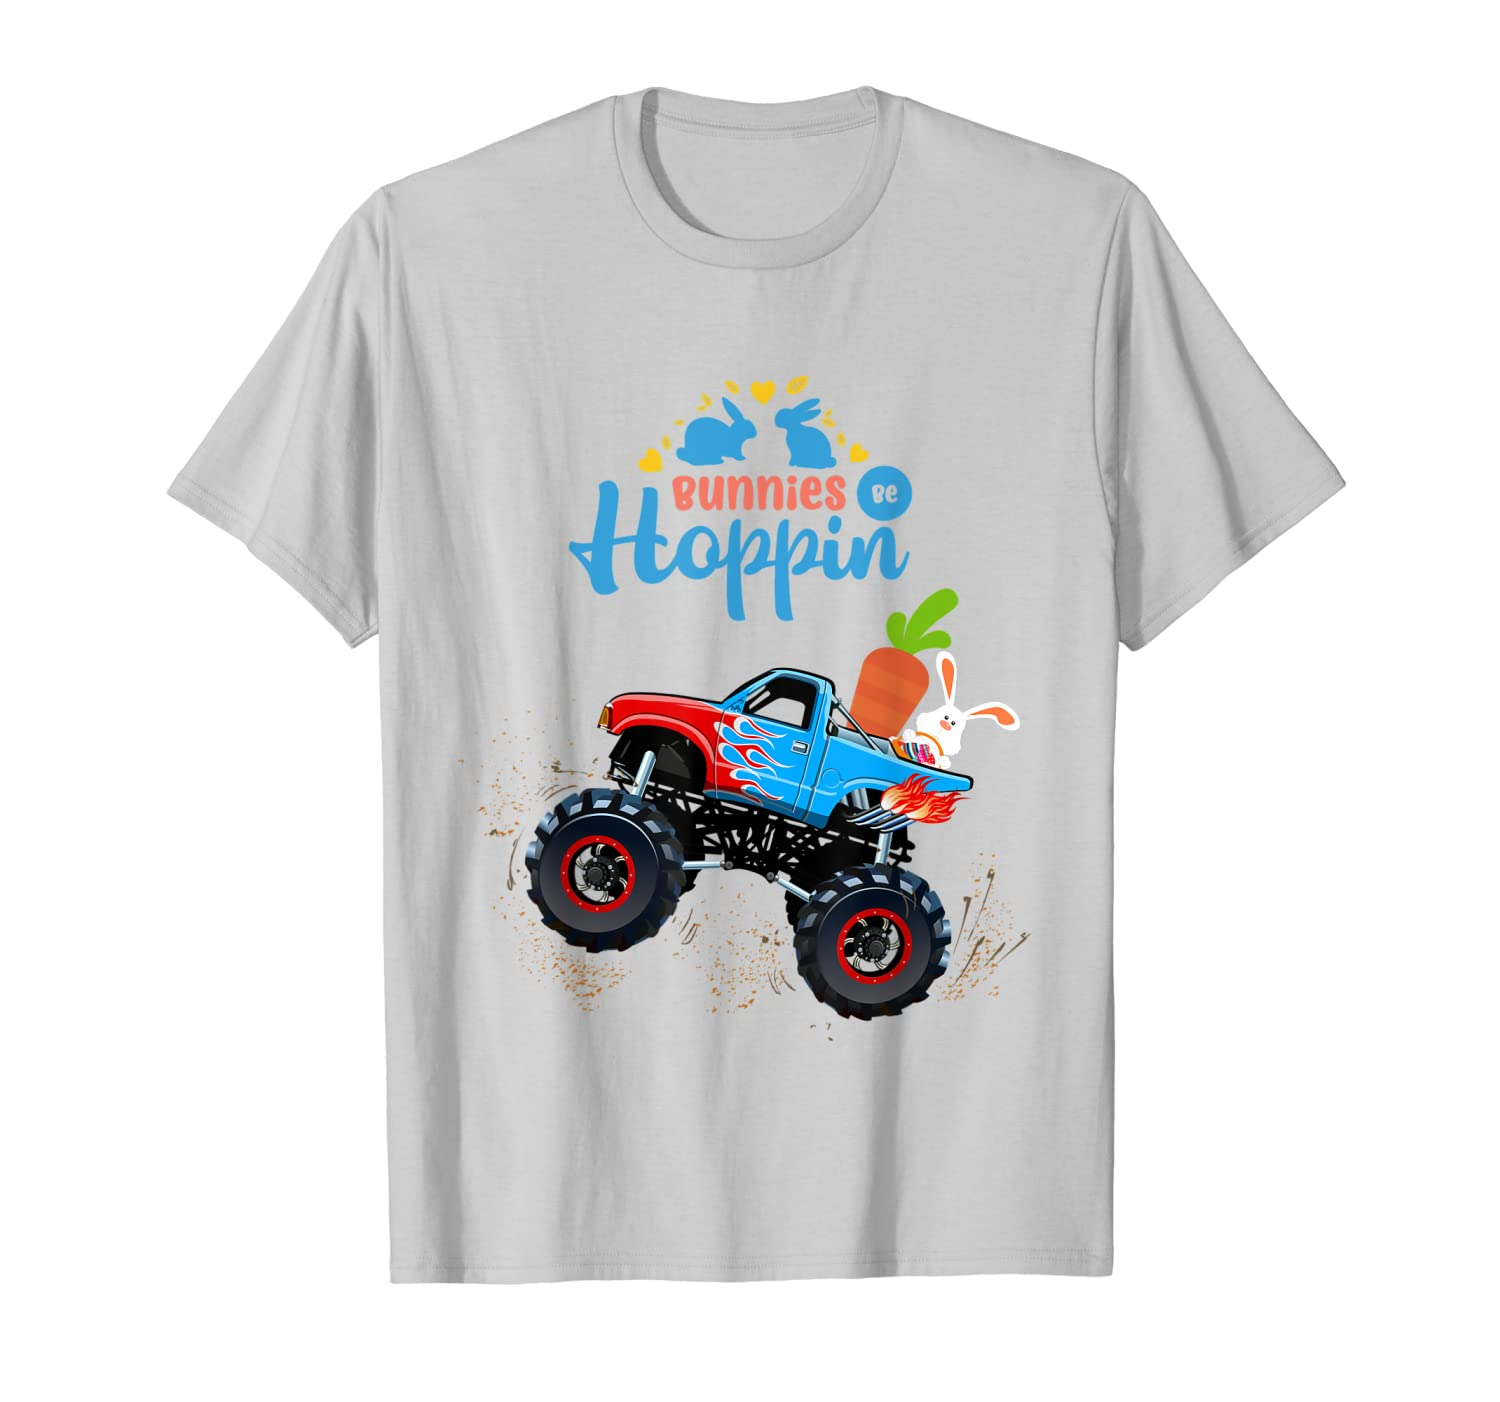 Easter Bunny Rabbit Monster Truck Shirt Toddler Boy Girl Kid-ANZ